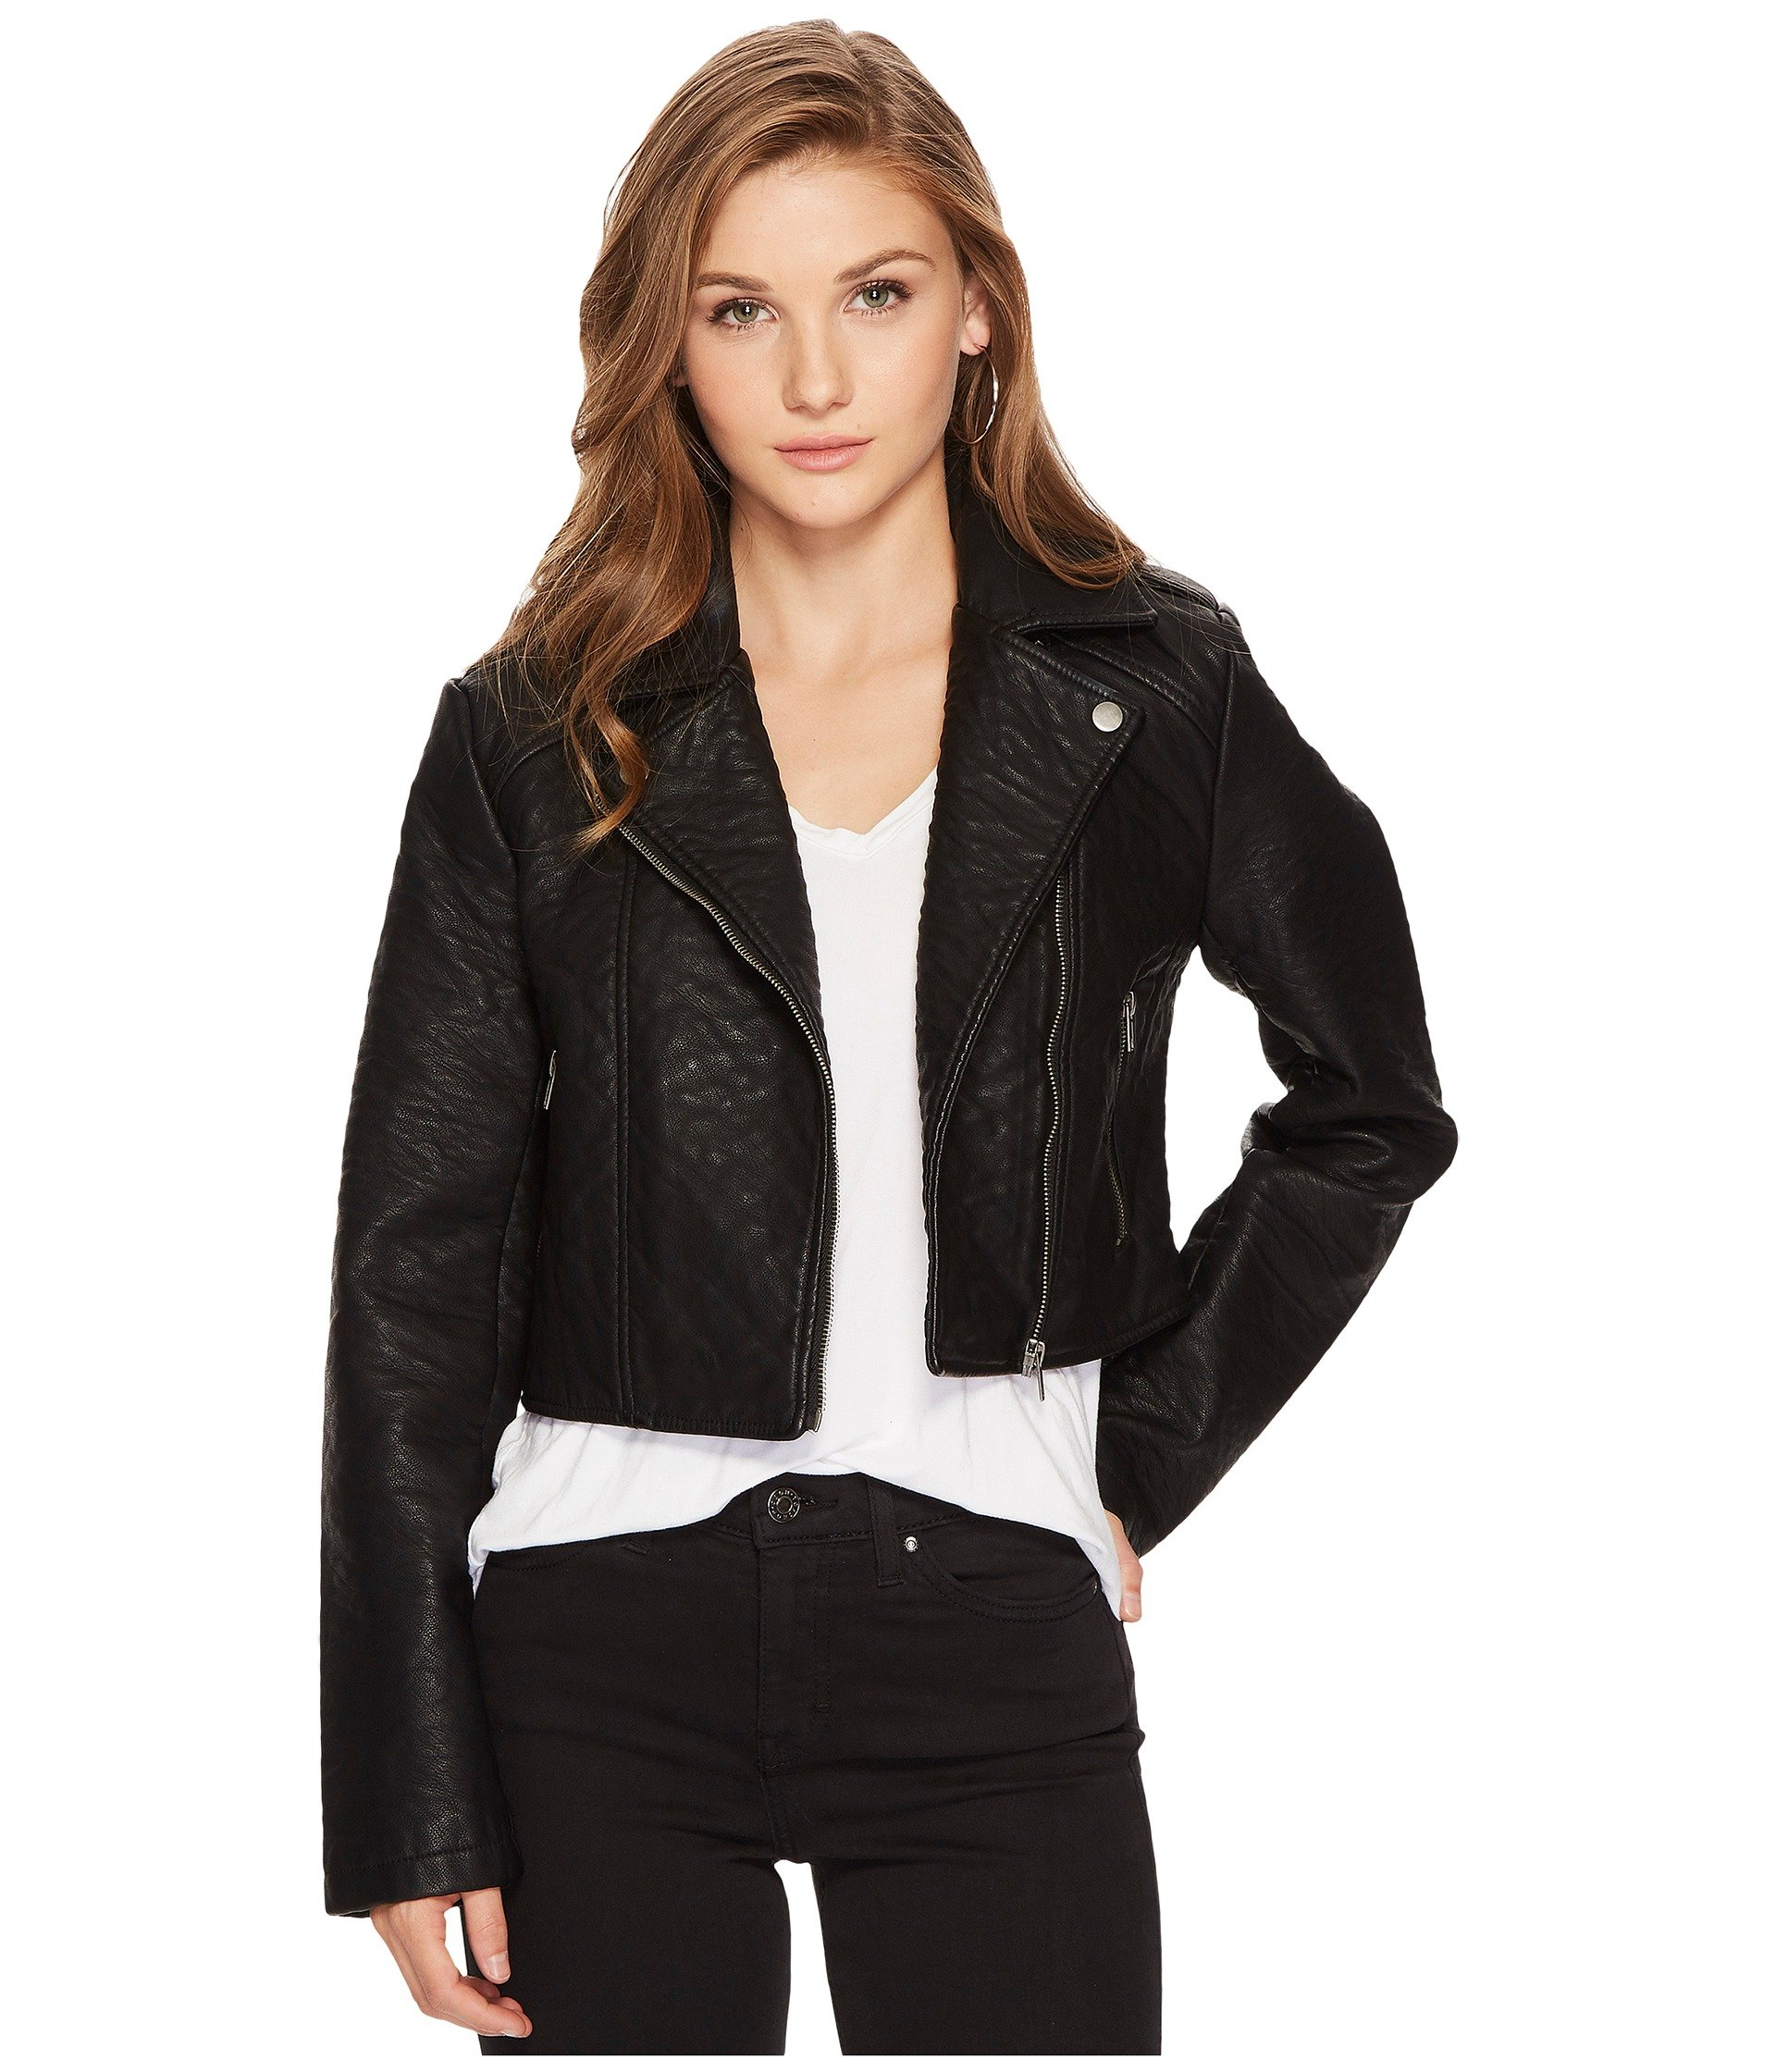 Black Leather Jacket, Black | Shipped Free at Zappos